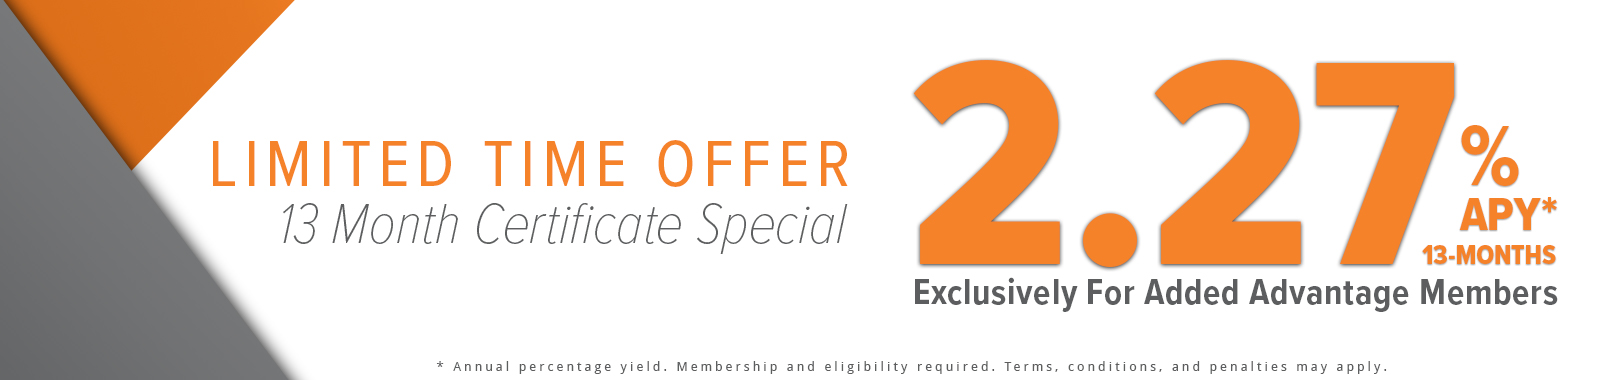 Banner with advertised rates of 2.27% and 2.00% on a gray and orange backdrop.